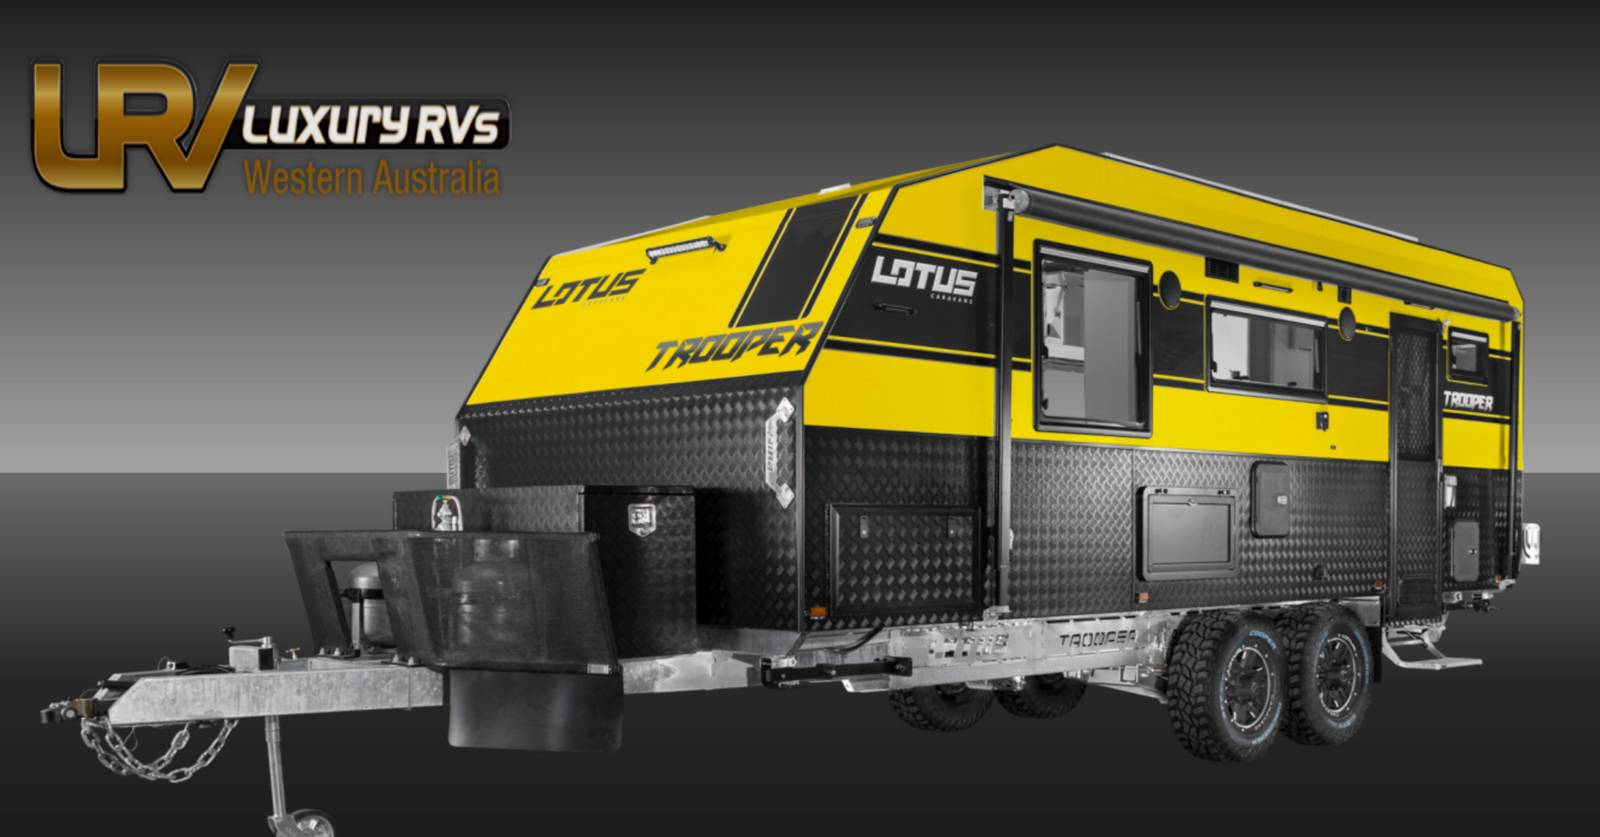 Dealer of the month: Luxury RVs WA